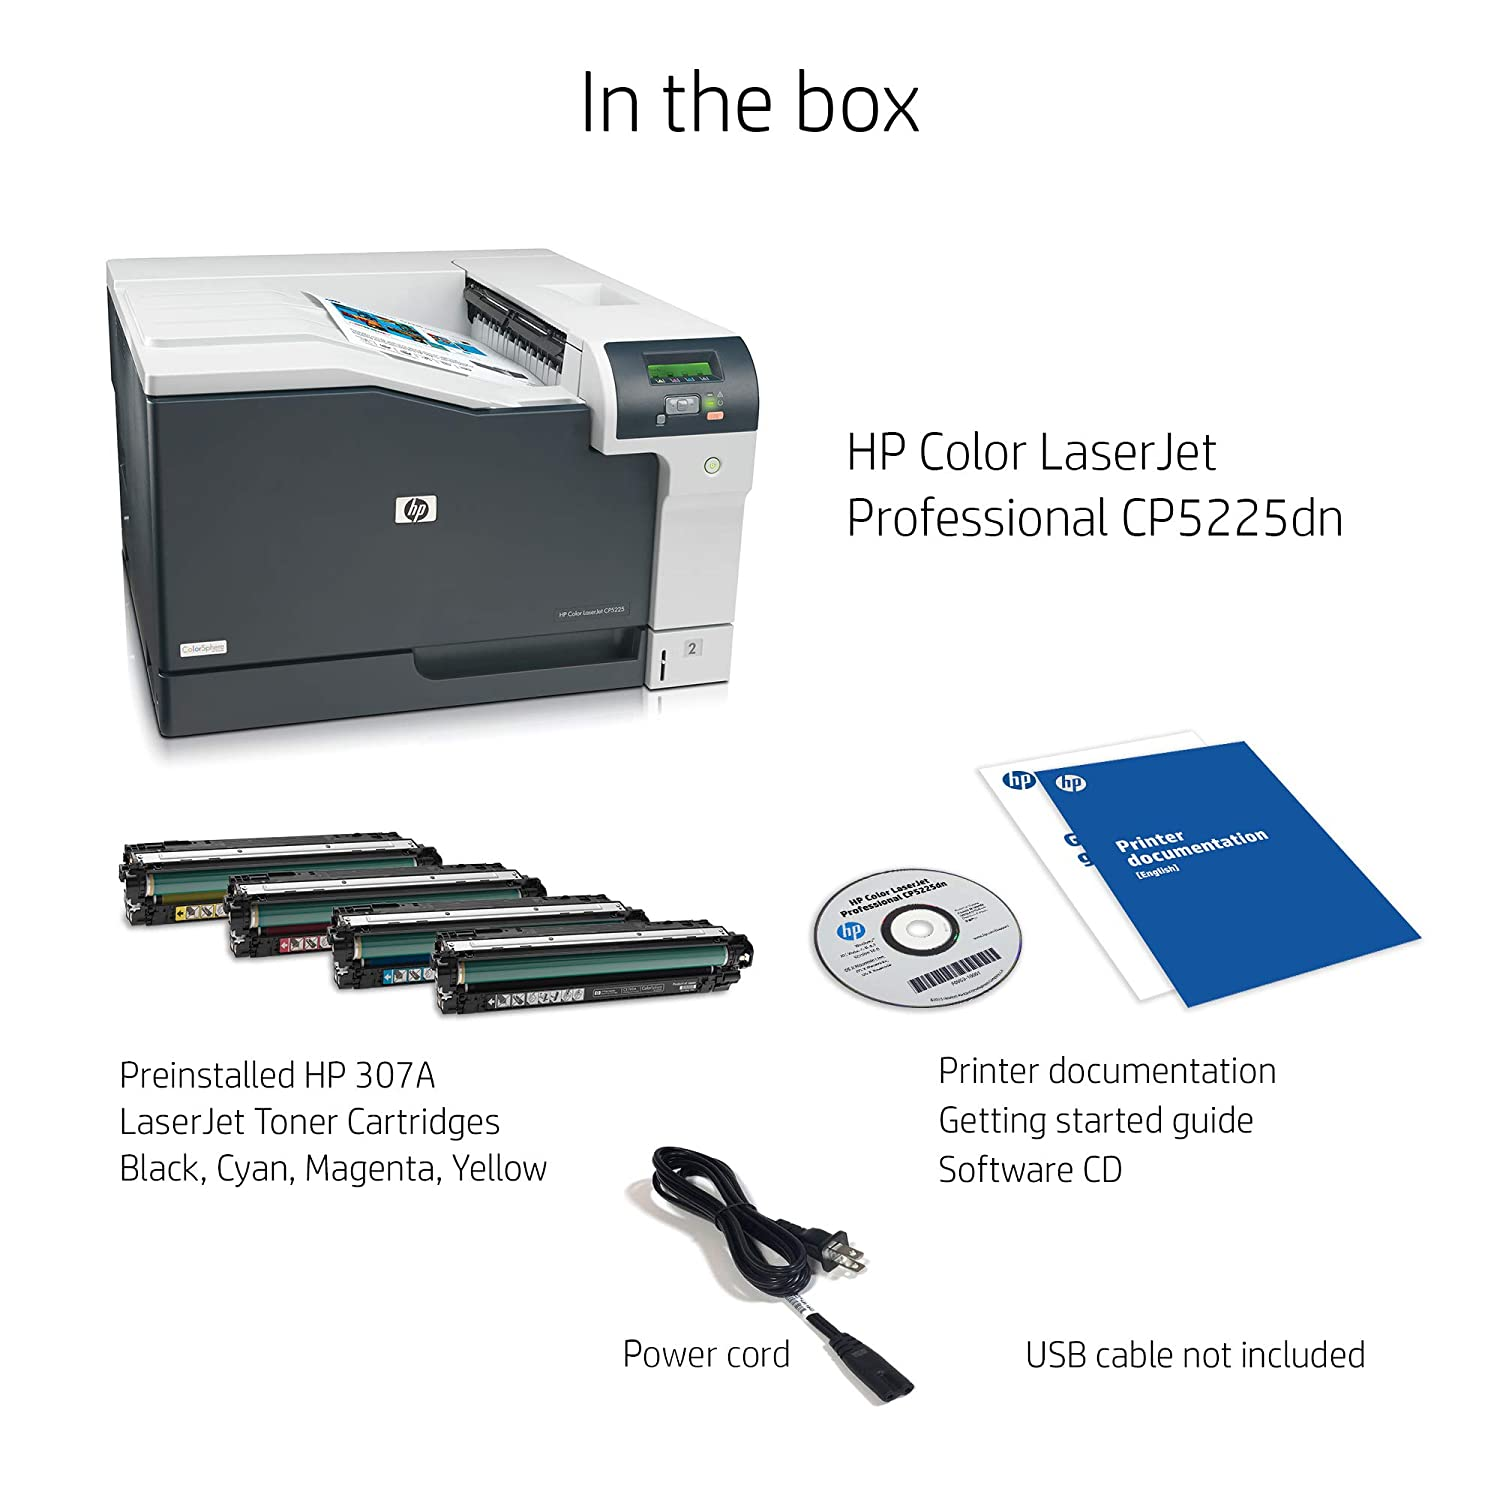 Amazon.com: HP Color LaserJet Professional CP5225dn Printer (CE712A) Auto  Duplex: Electronics